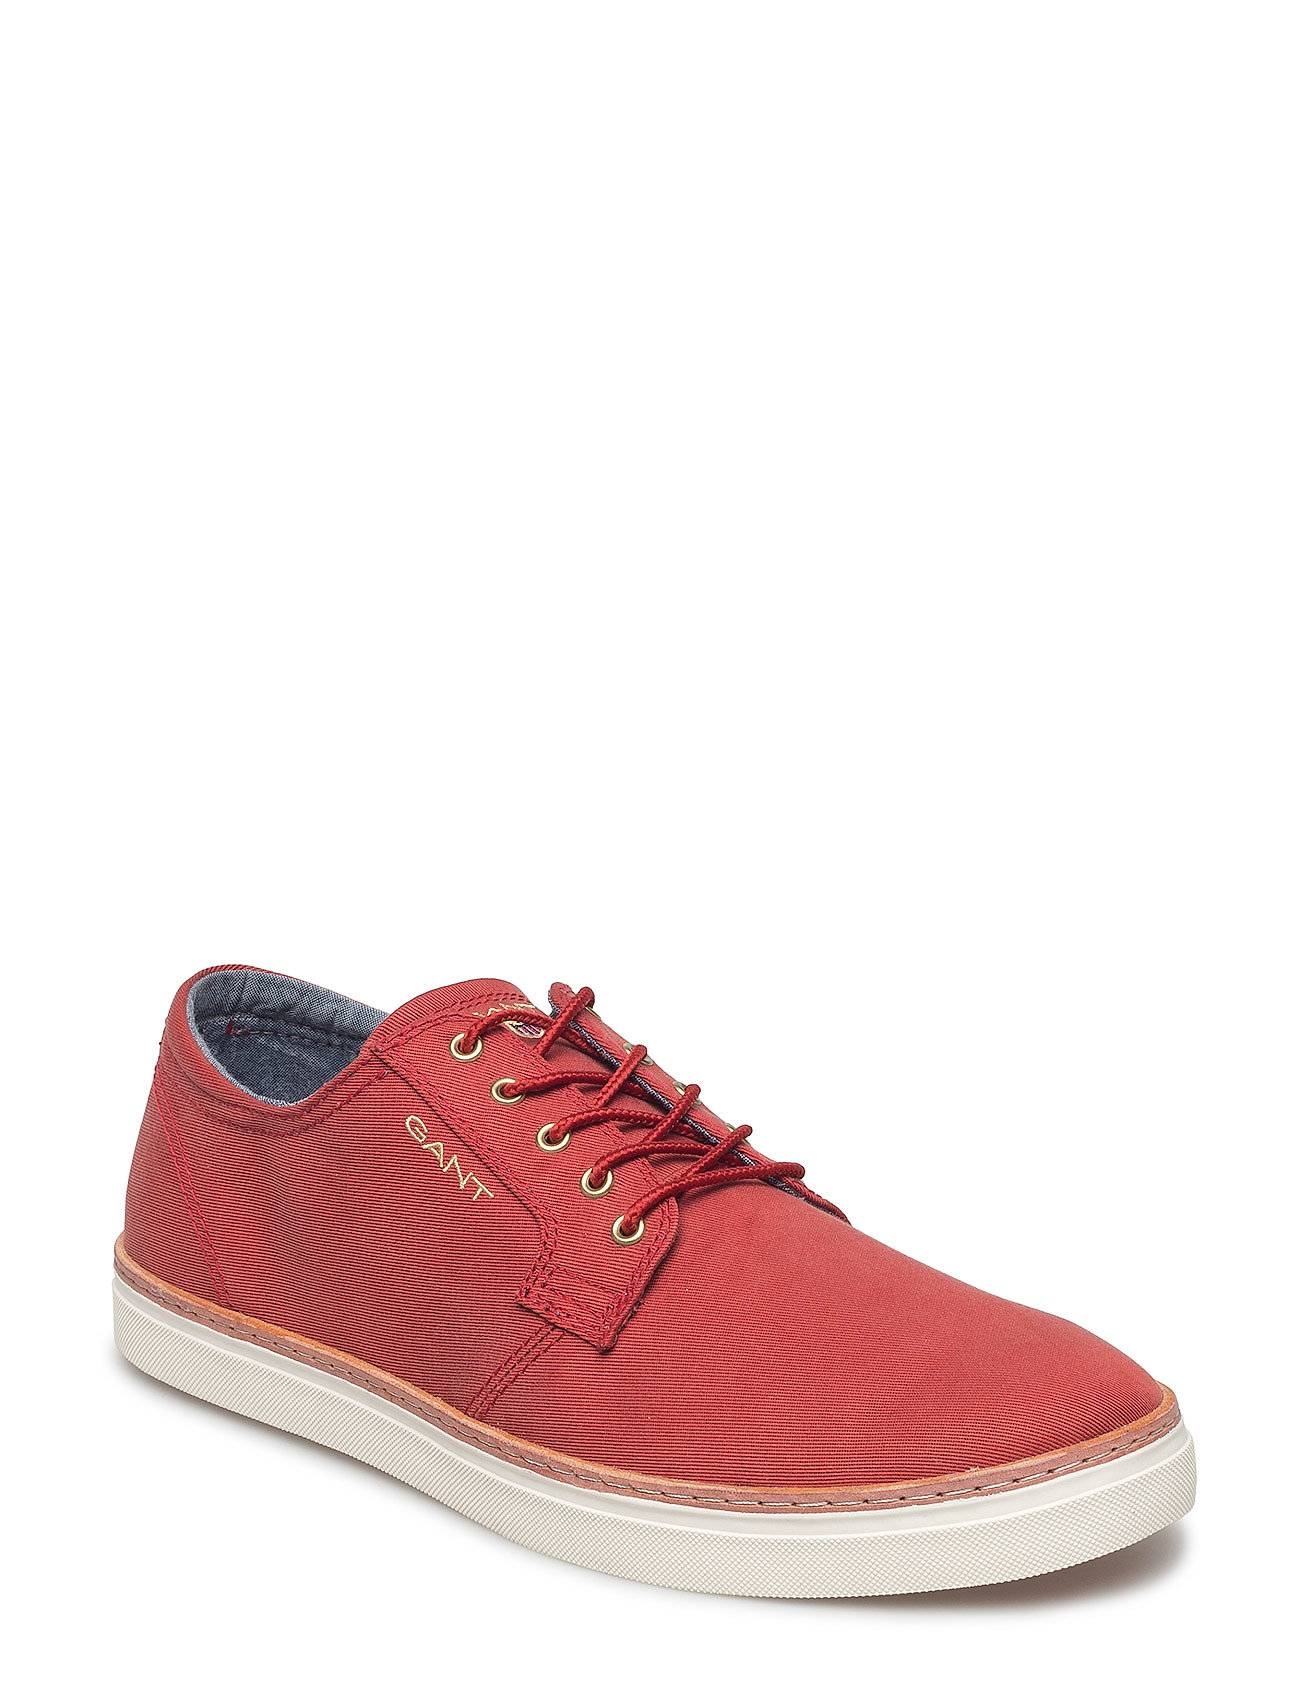 GANT Bari Low Lace Shoes